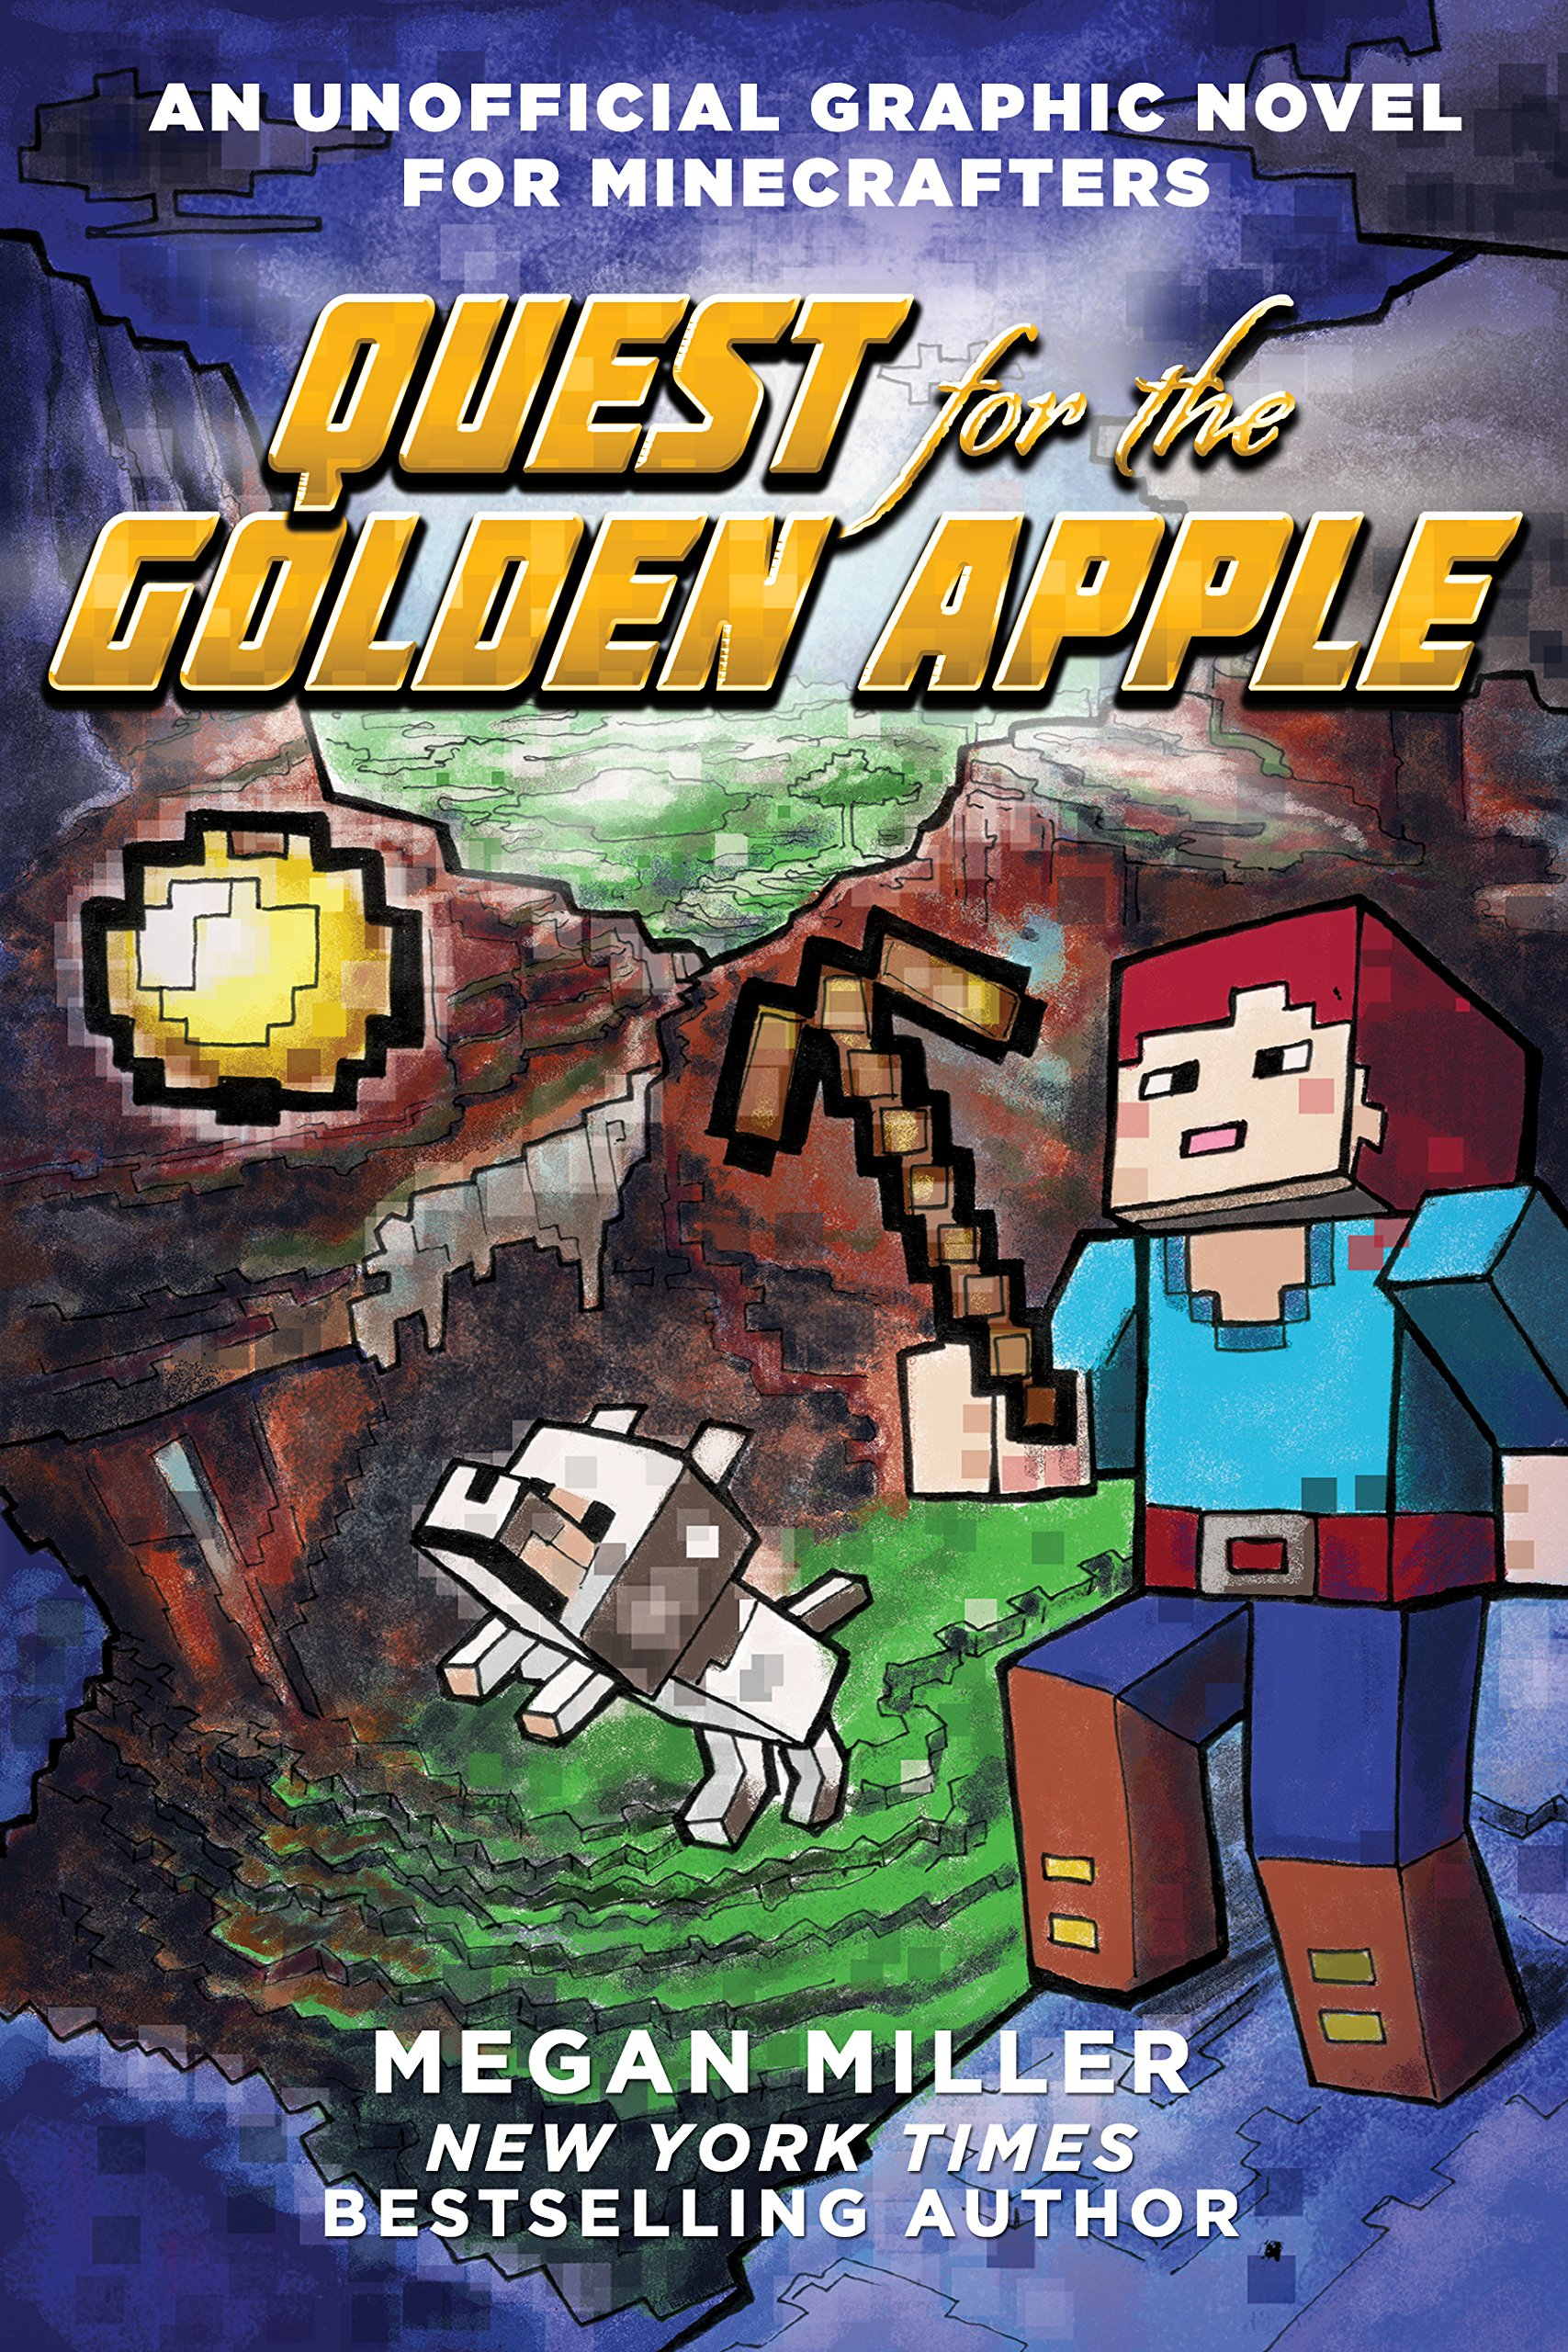 Quest Golden Apple Unofficial Minecrafters product image